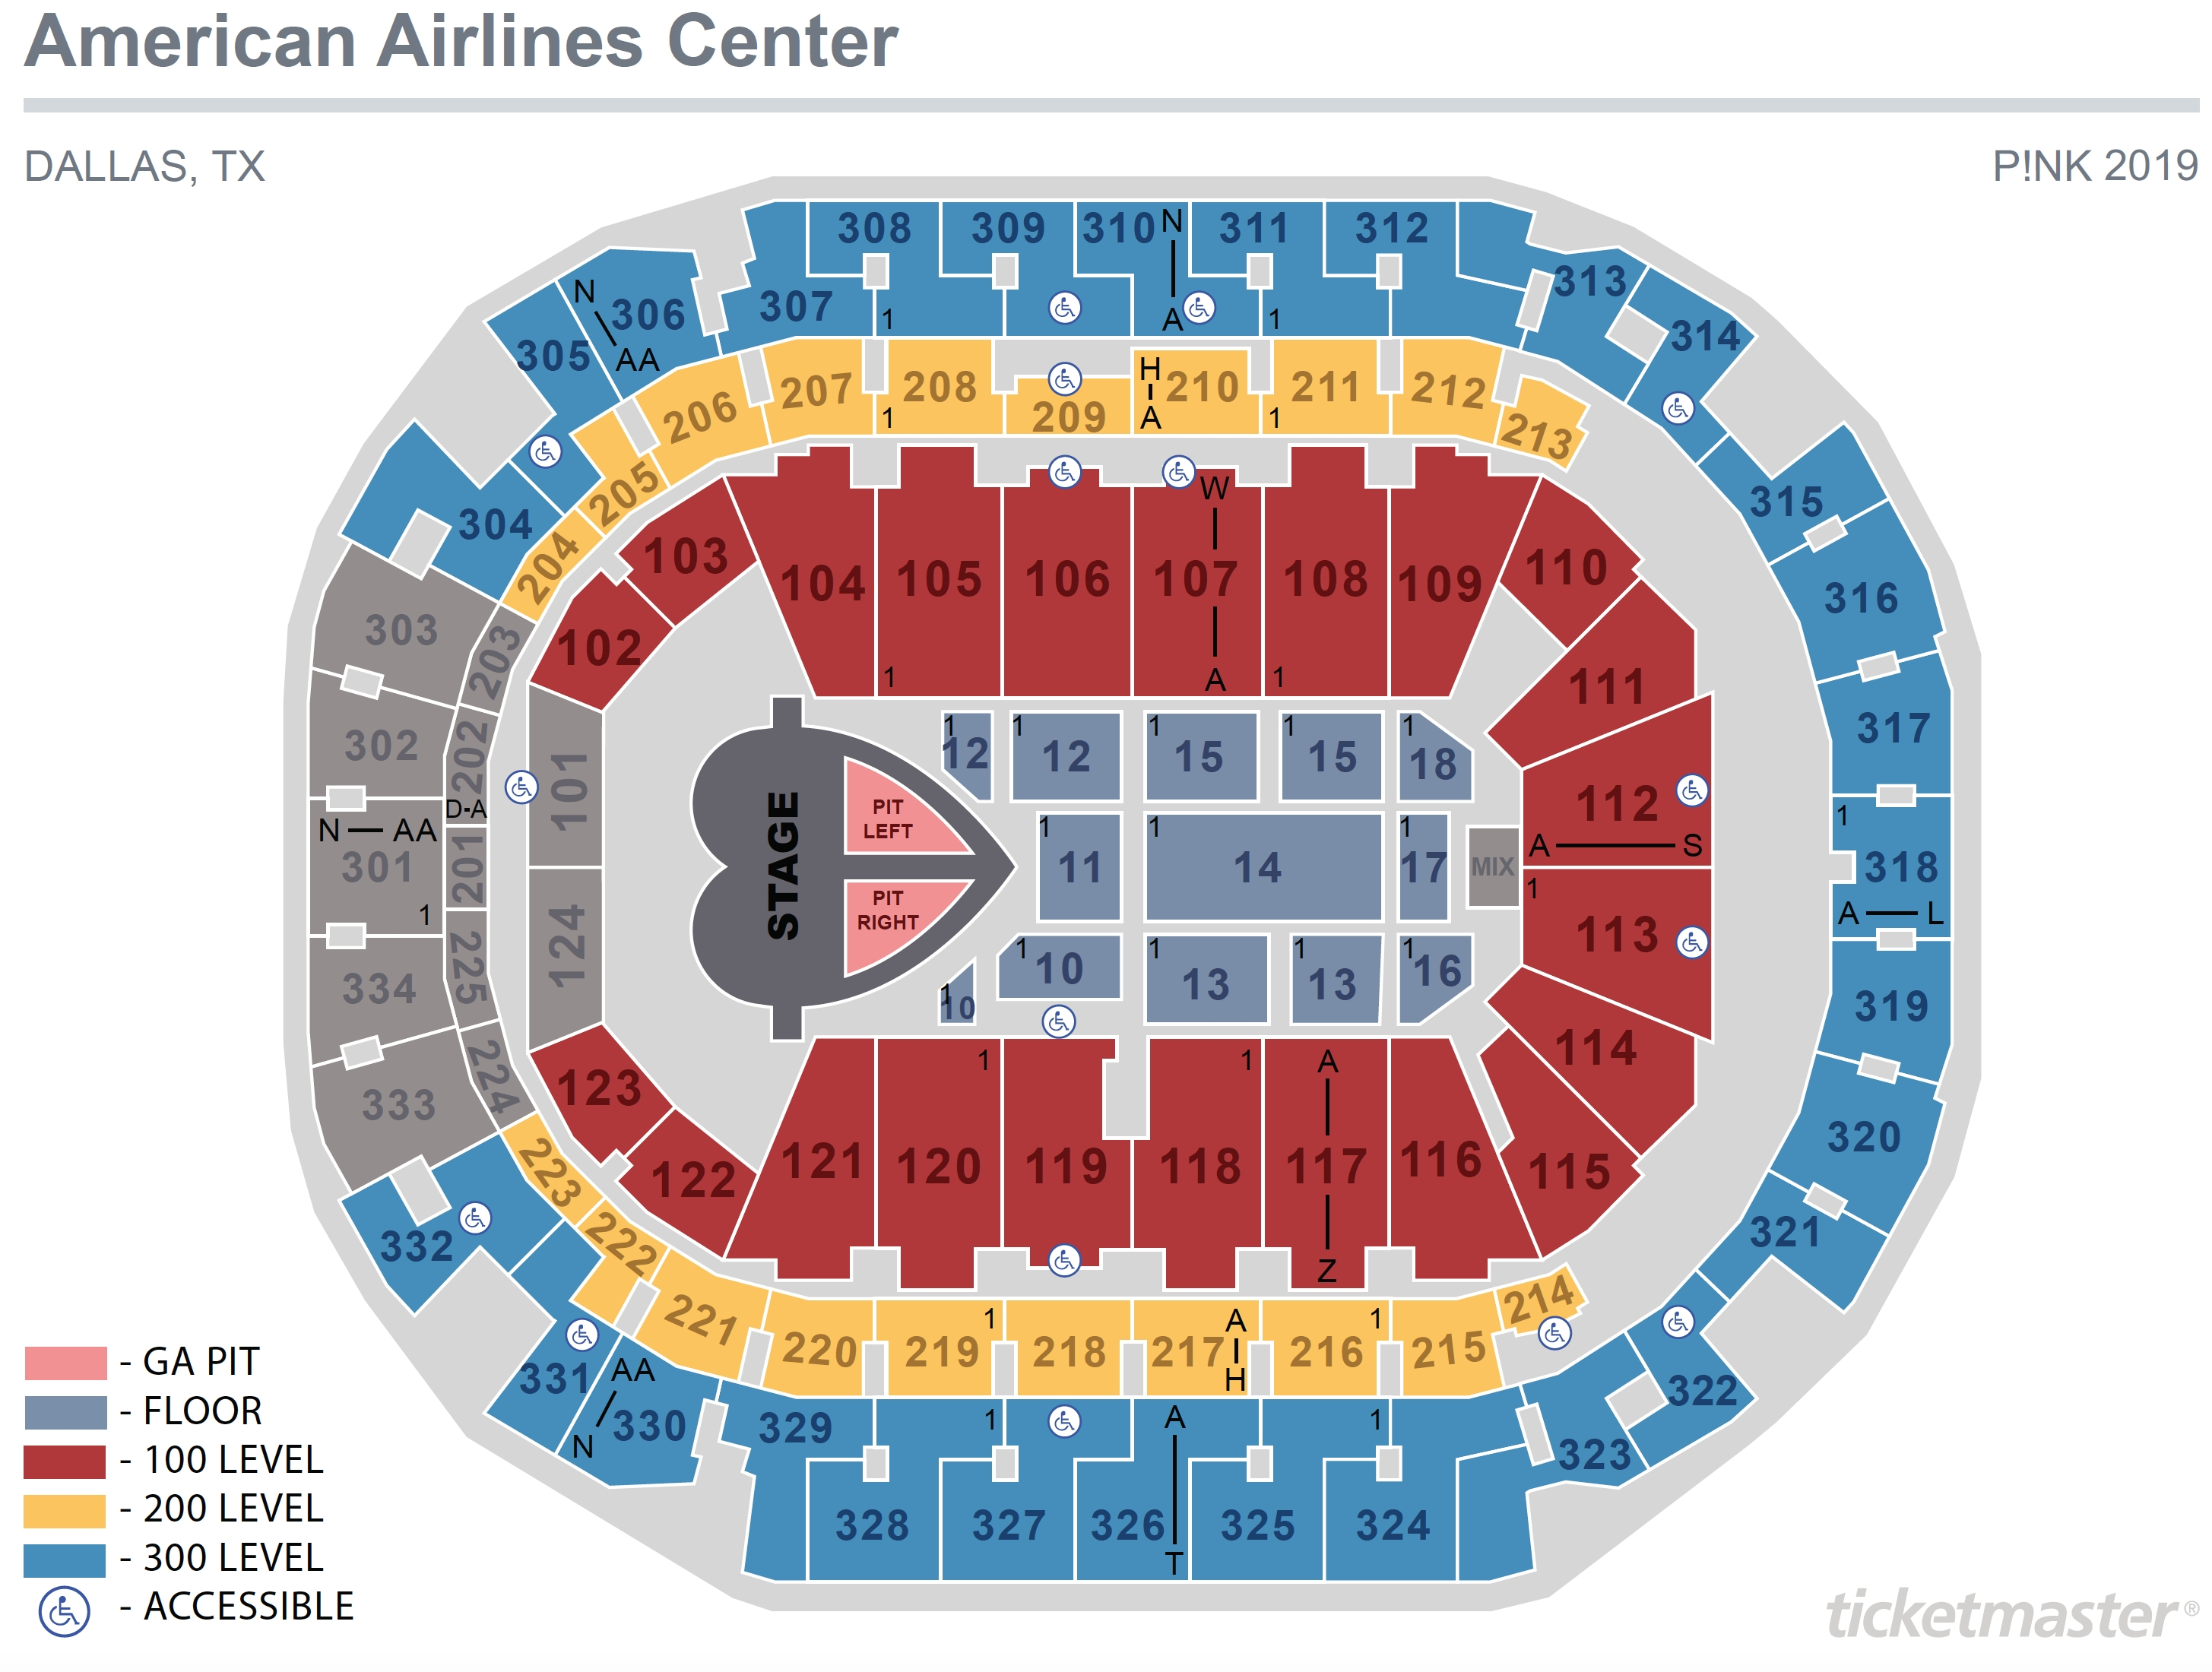 Seating Maps | American Airlines Center intended for Verizon Center Seating Chart Pdf